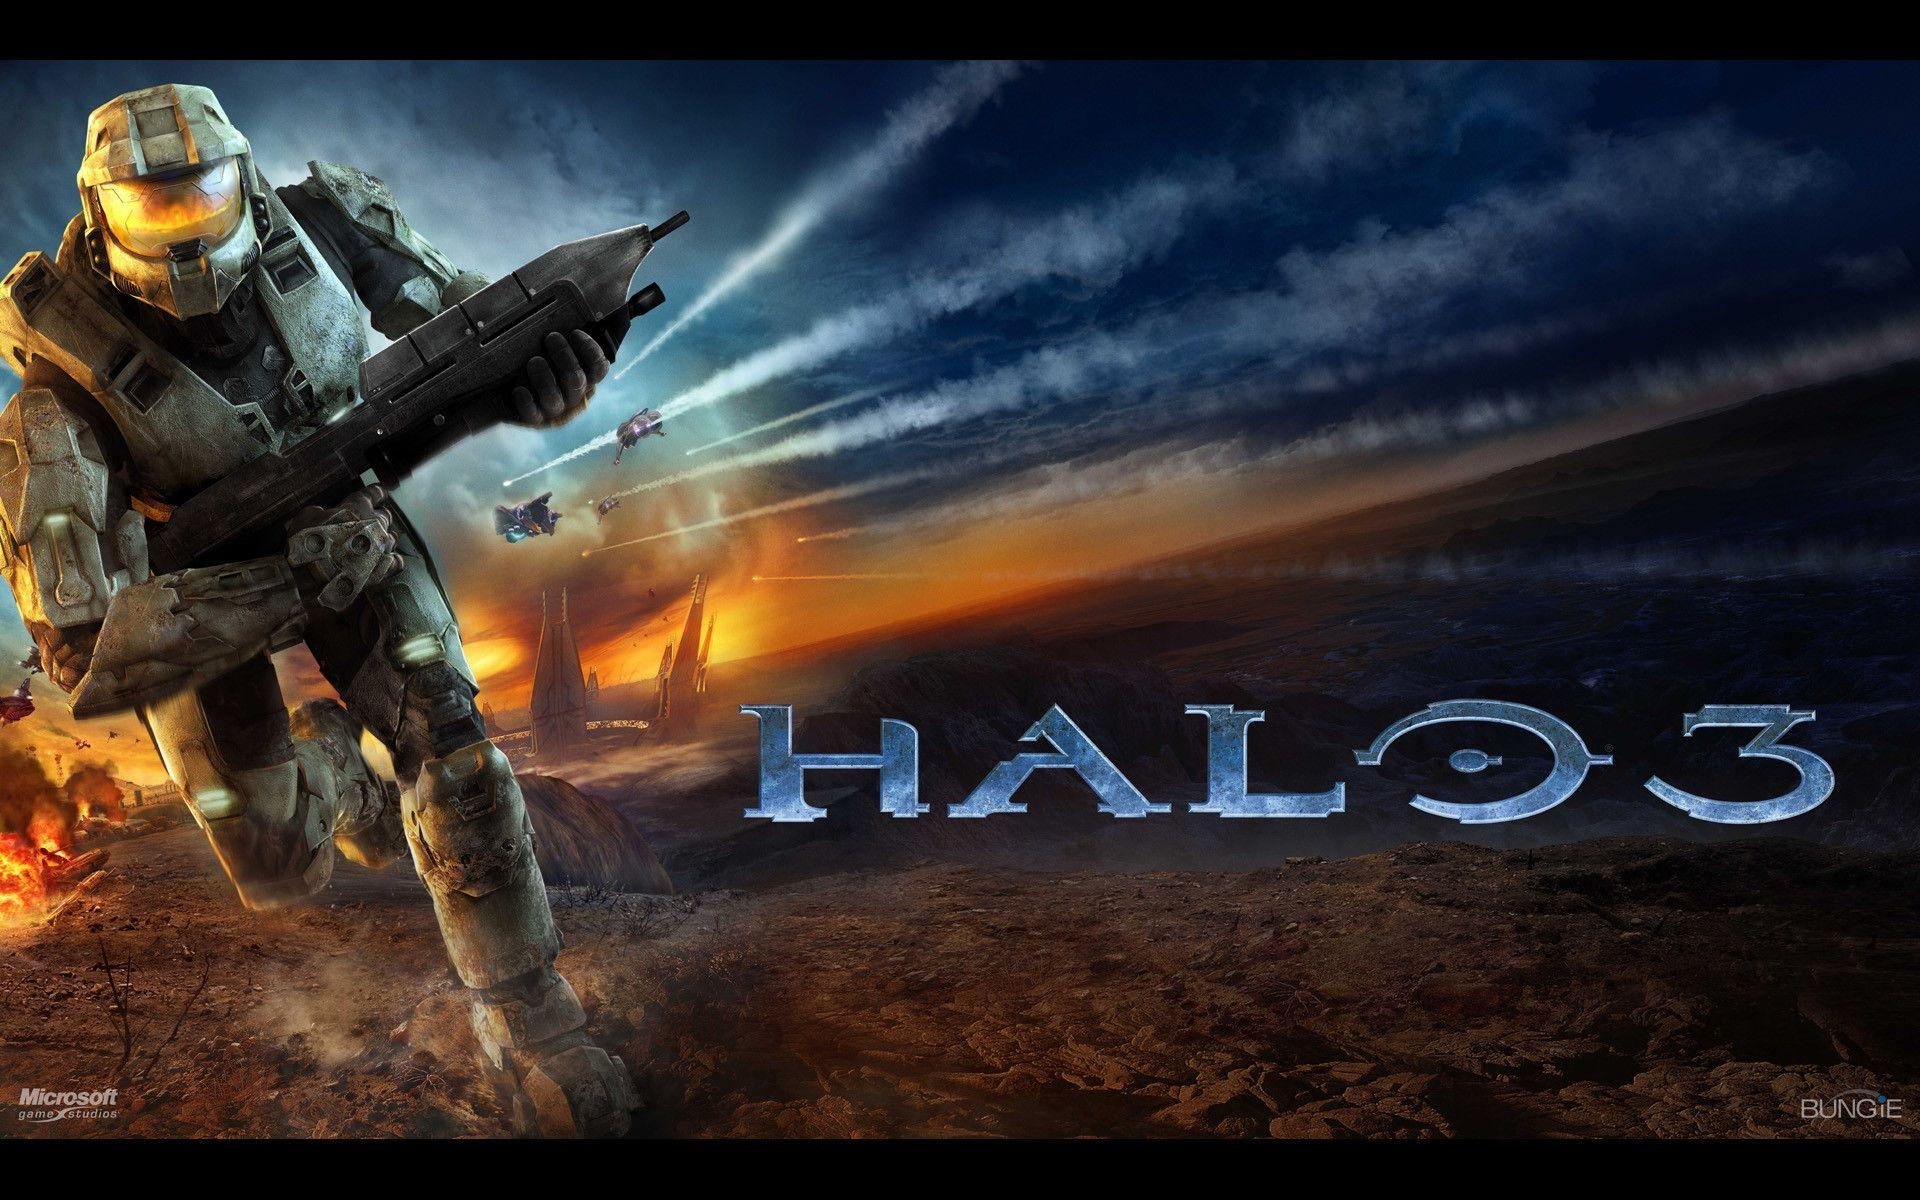 An Ode To Halo 3 (And The Entire Xbox 360 Era) – @JamesSantore